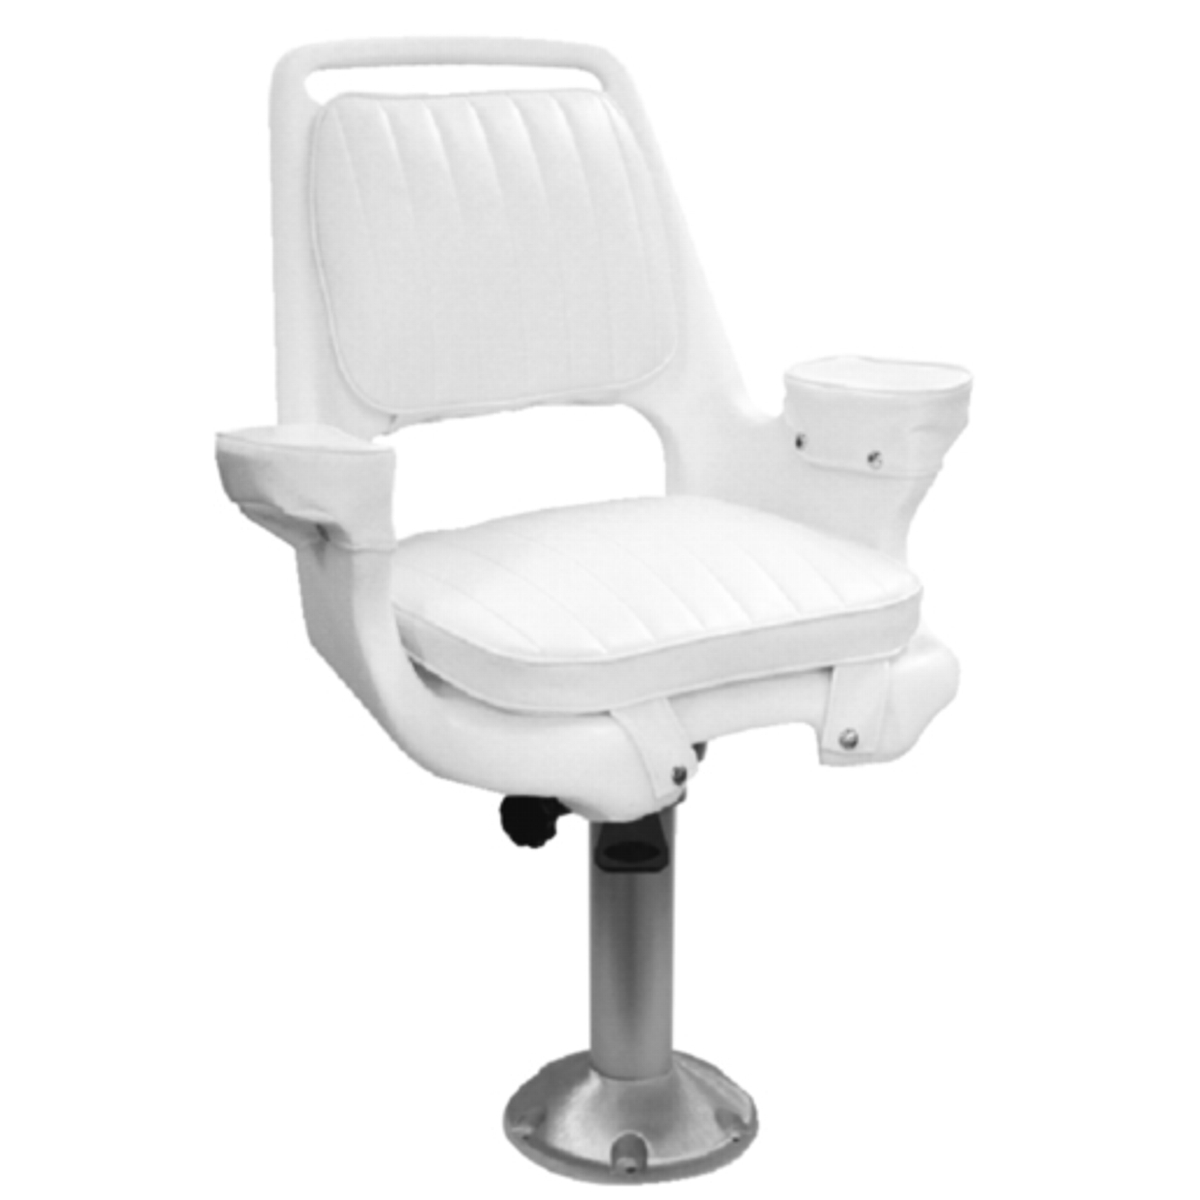 15 Fixed Height Fishing Boat Captains Pilot Chair Seat